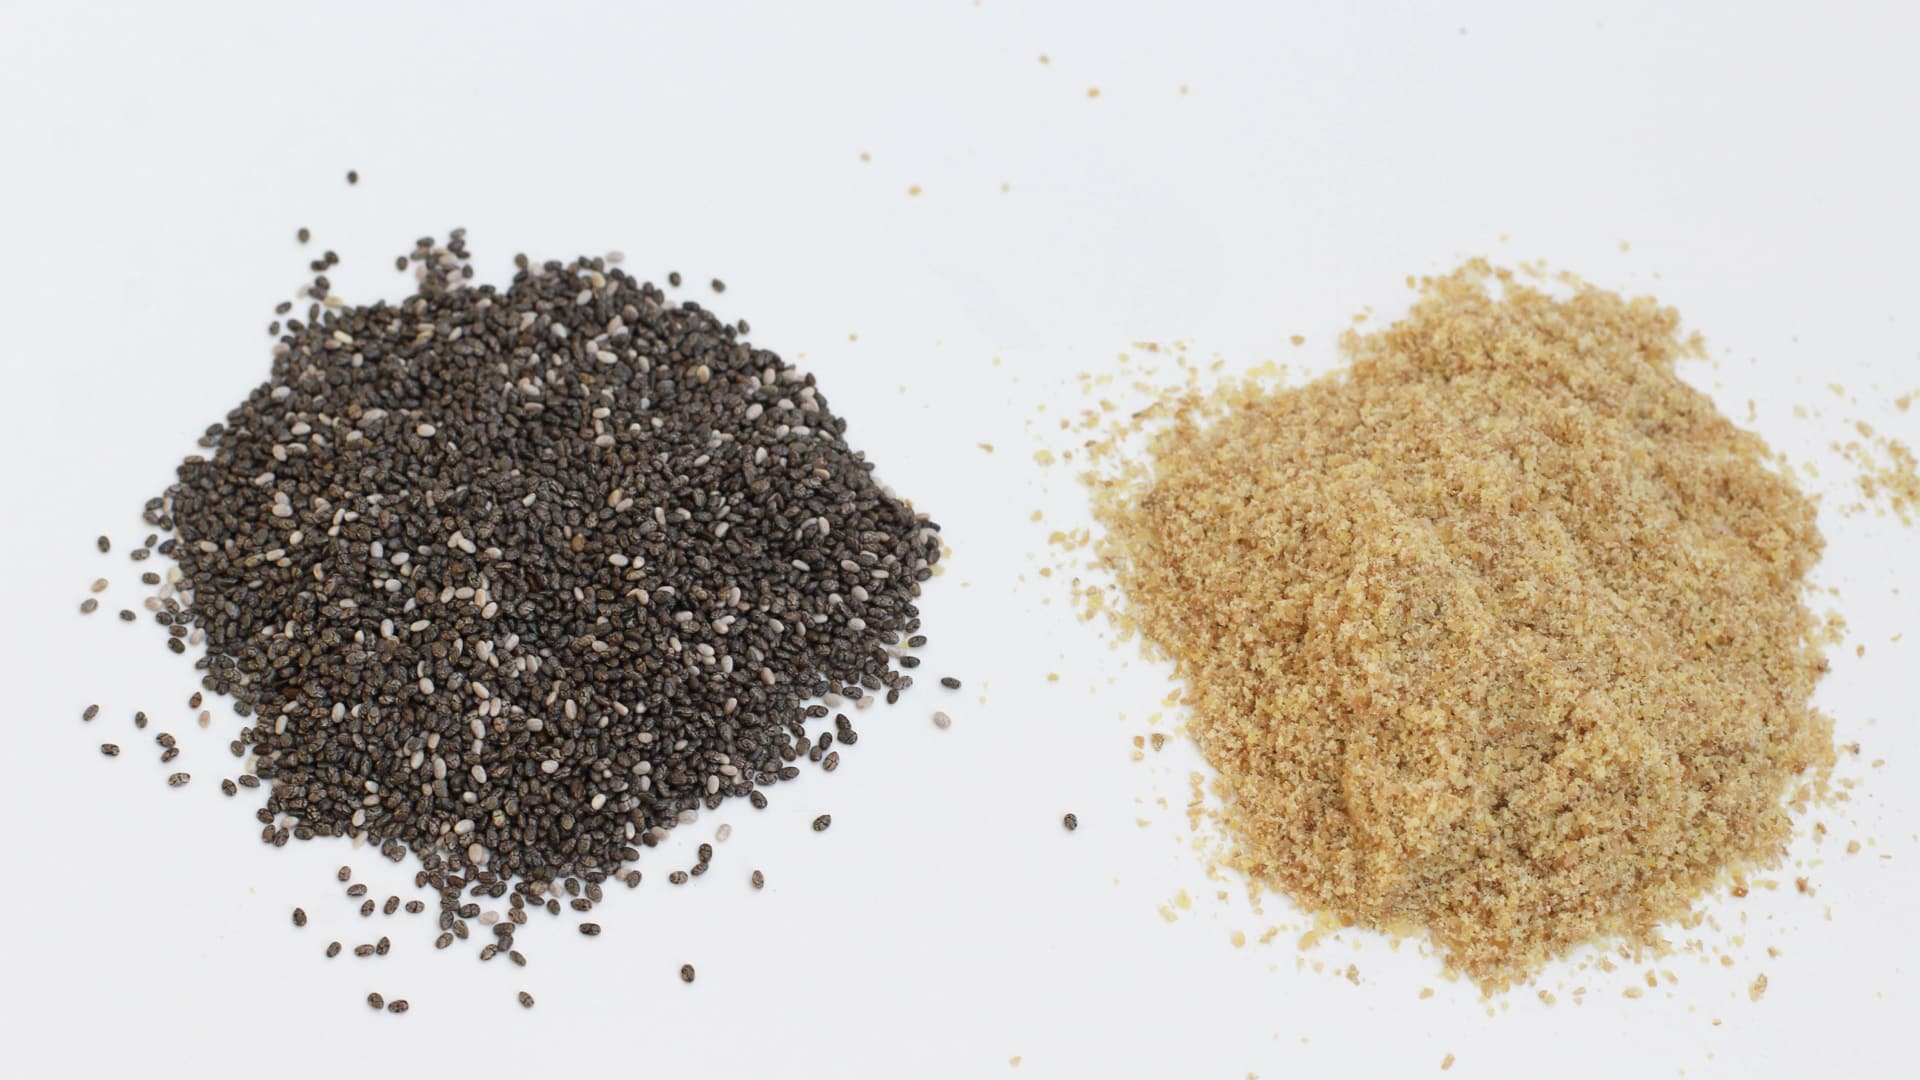 Which are better: Chia Seeds or Flax Seeds?